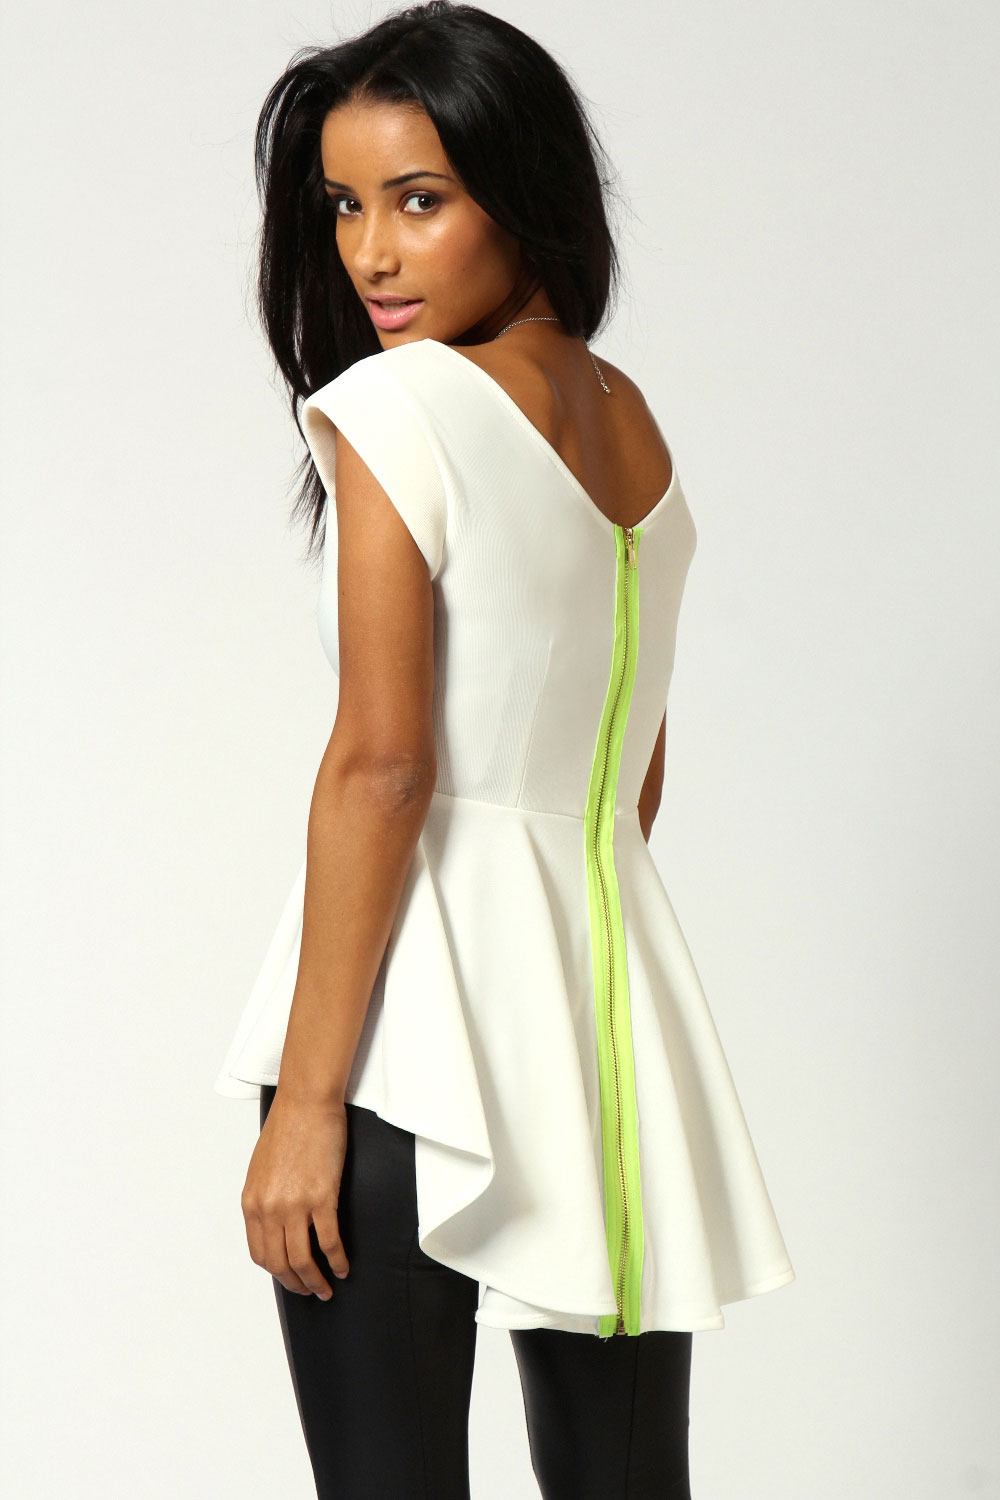 Boohoo-Womens-Ladies-Maria-Neon-Zip-Back-Peplum-Top